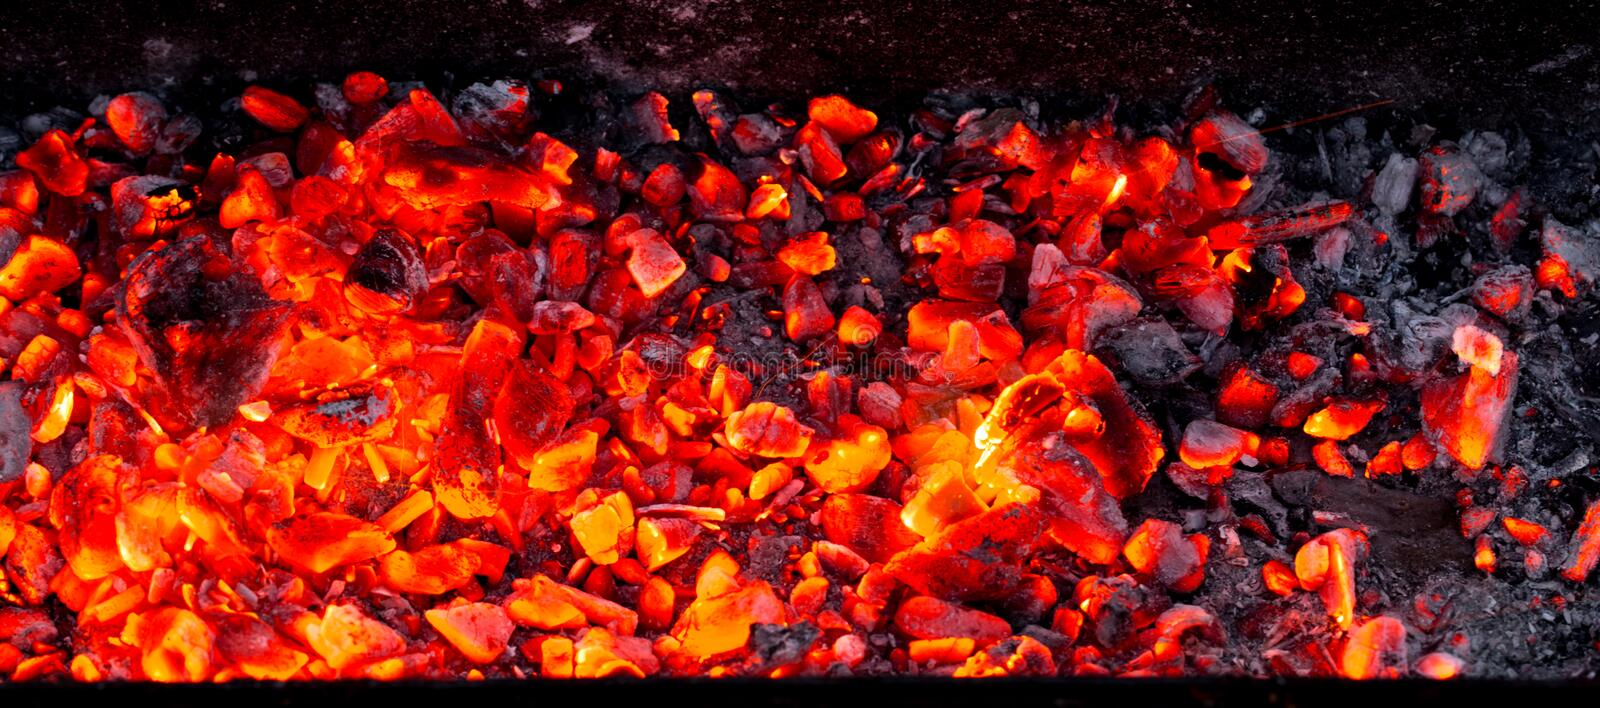 Burning charcoal as background stock images